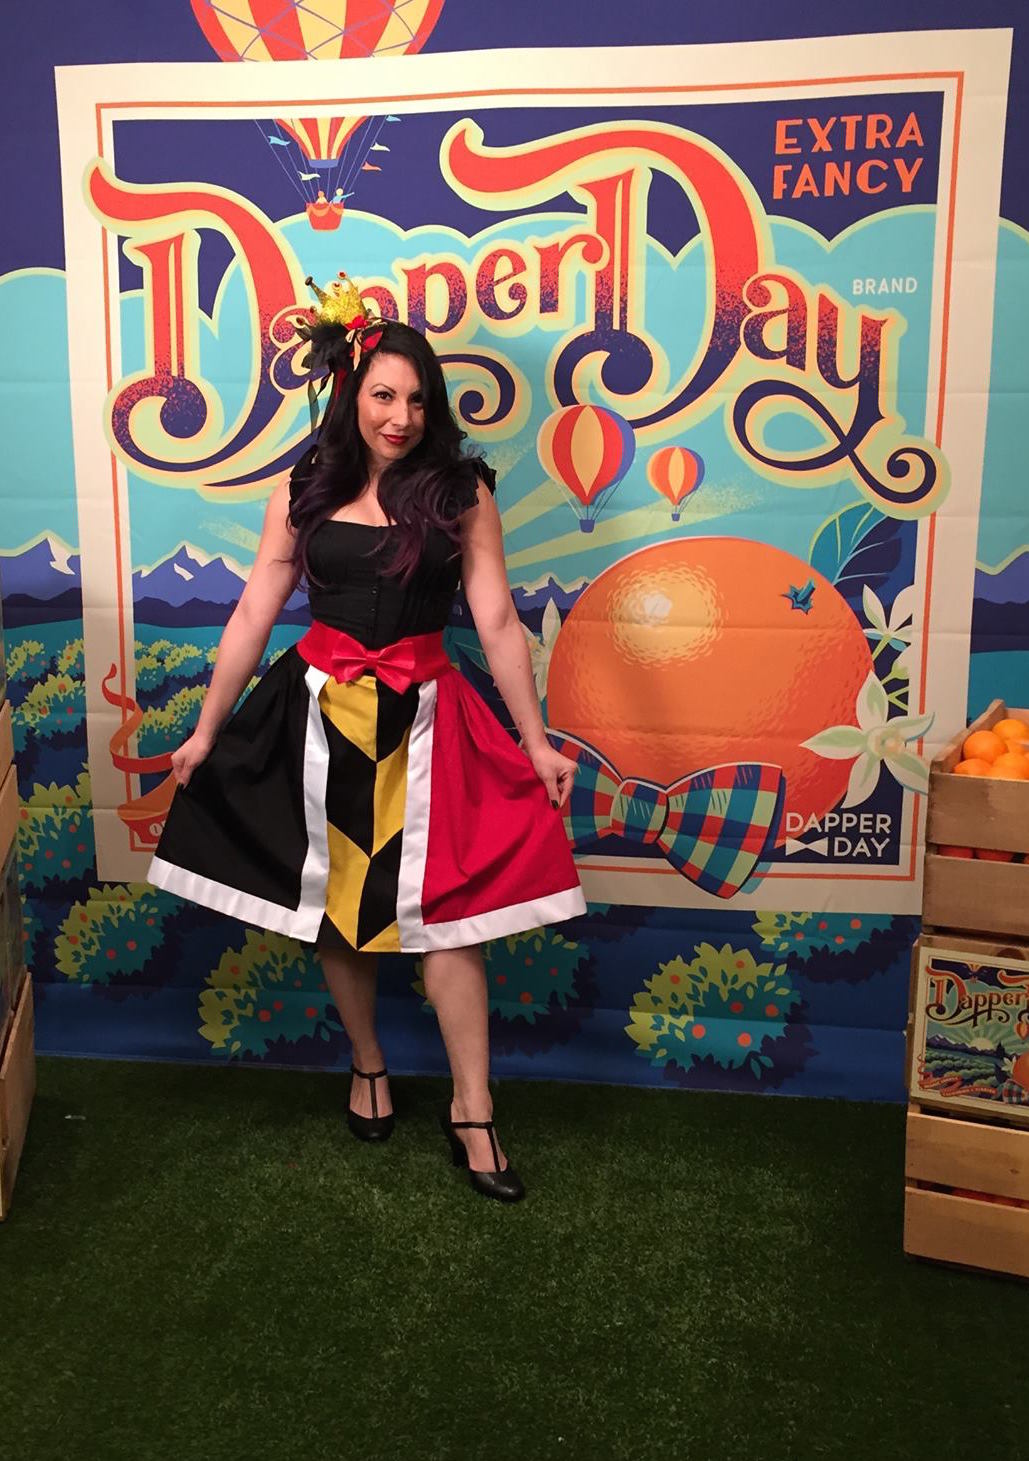 Dapper Day Queen of Hearts